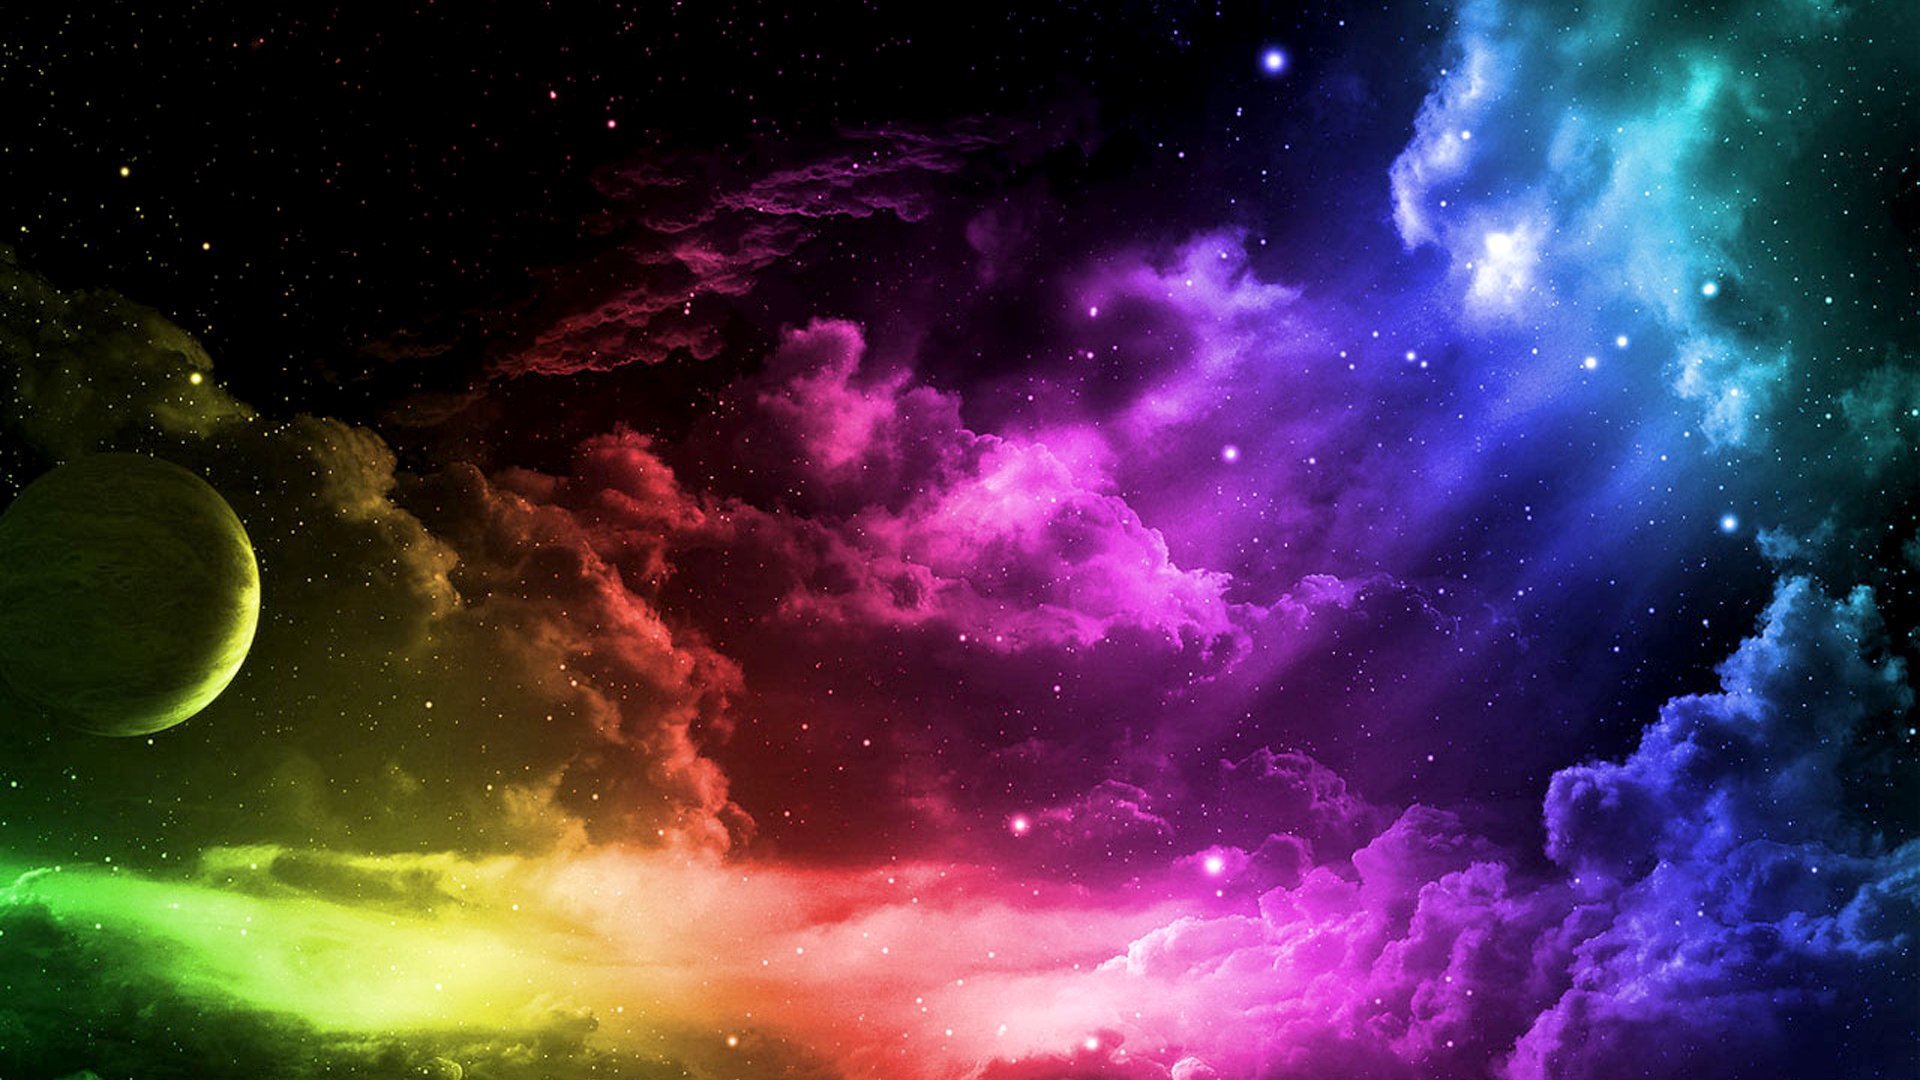 Free 43 Colorful Desktop Backgrounds